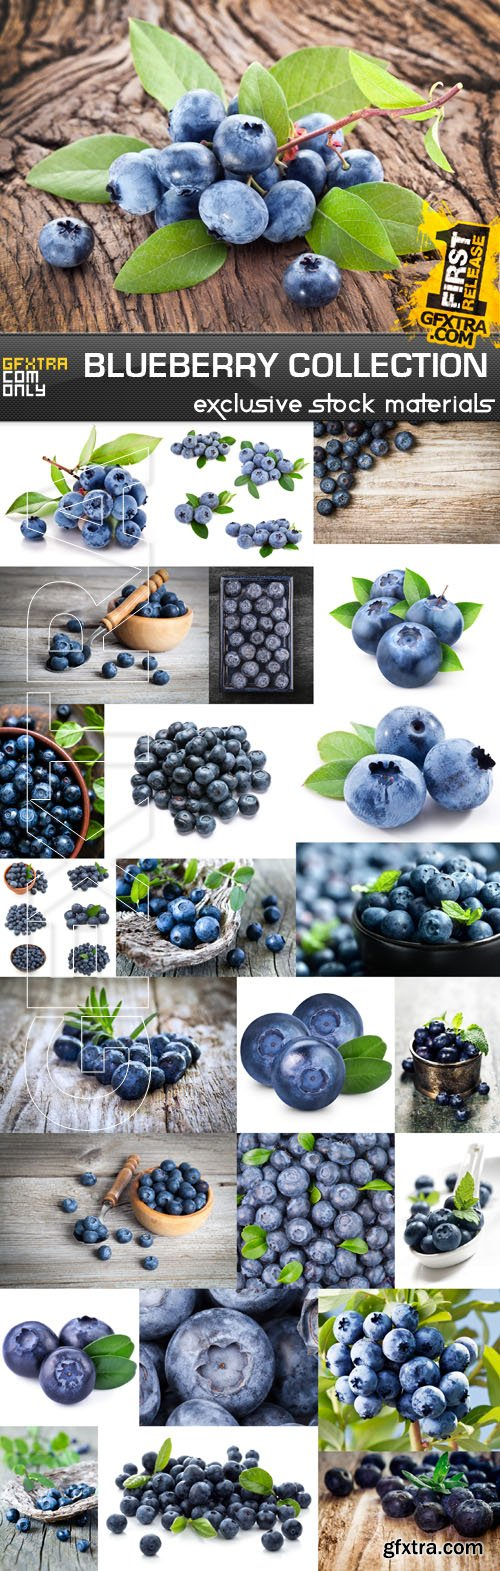 Blueberry Collection, 25xUHQ JPEG